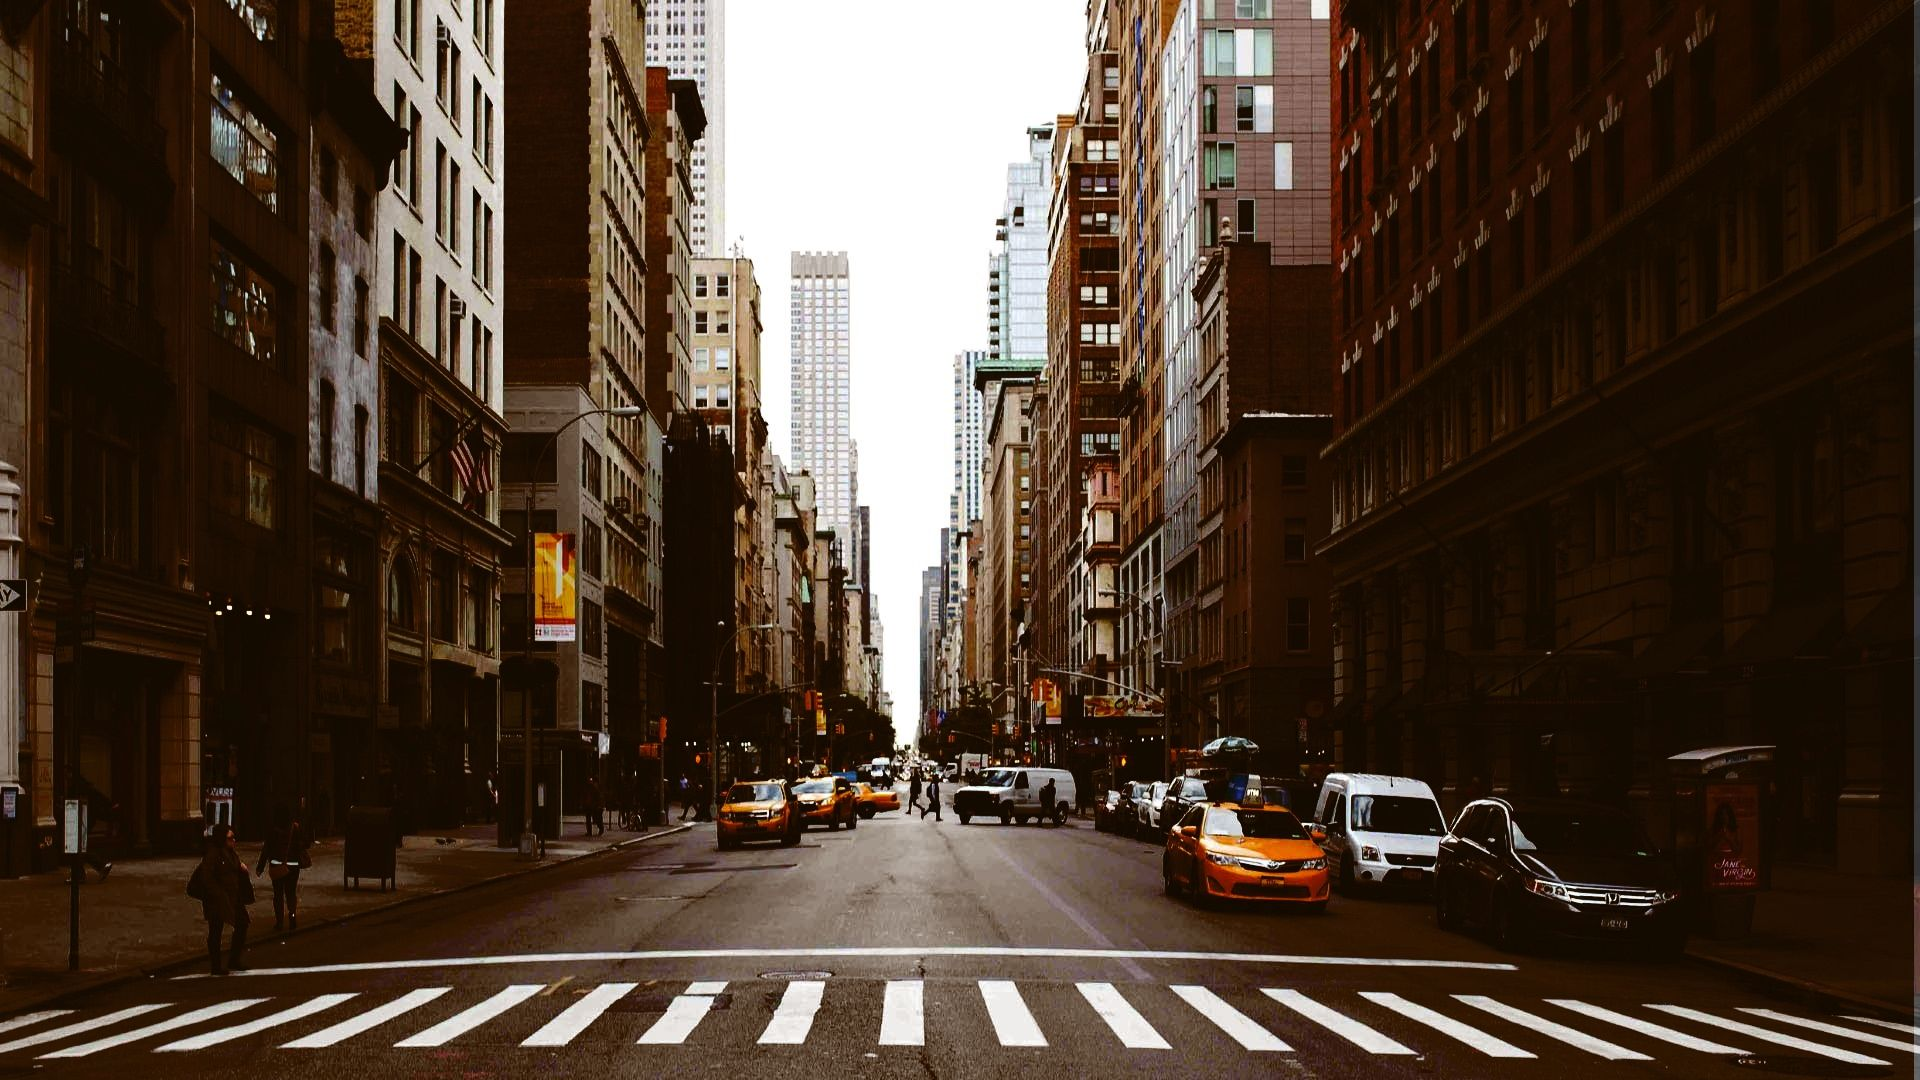 New York City Street Wallpapers Top Free New York City